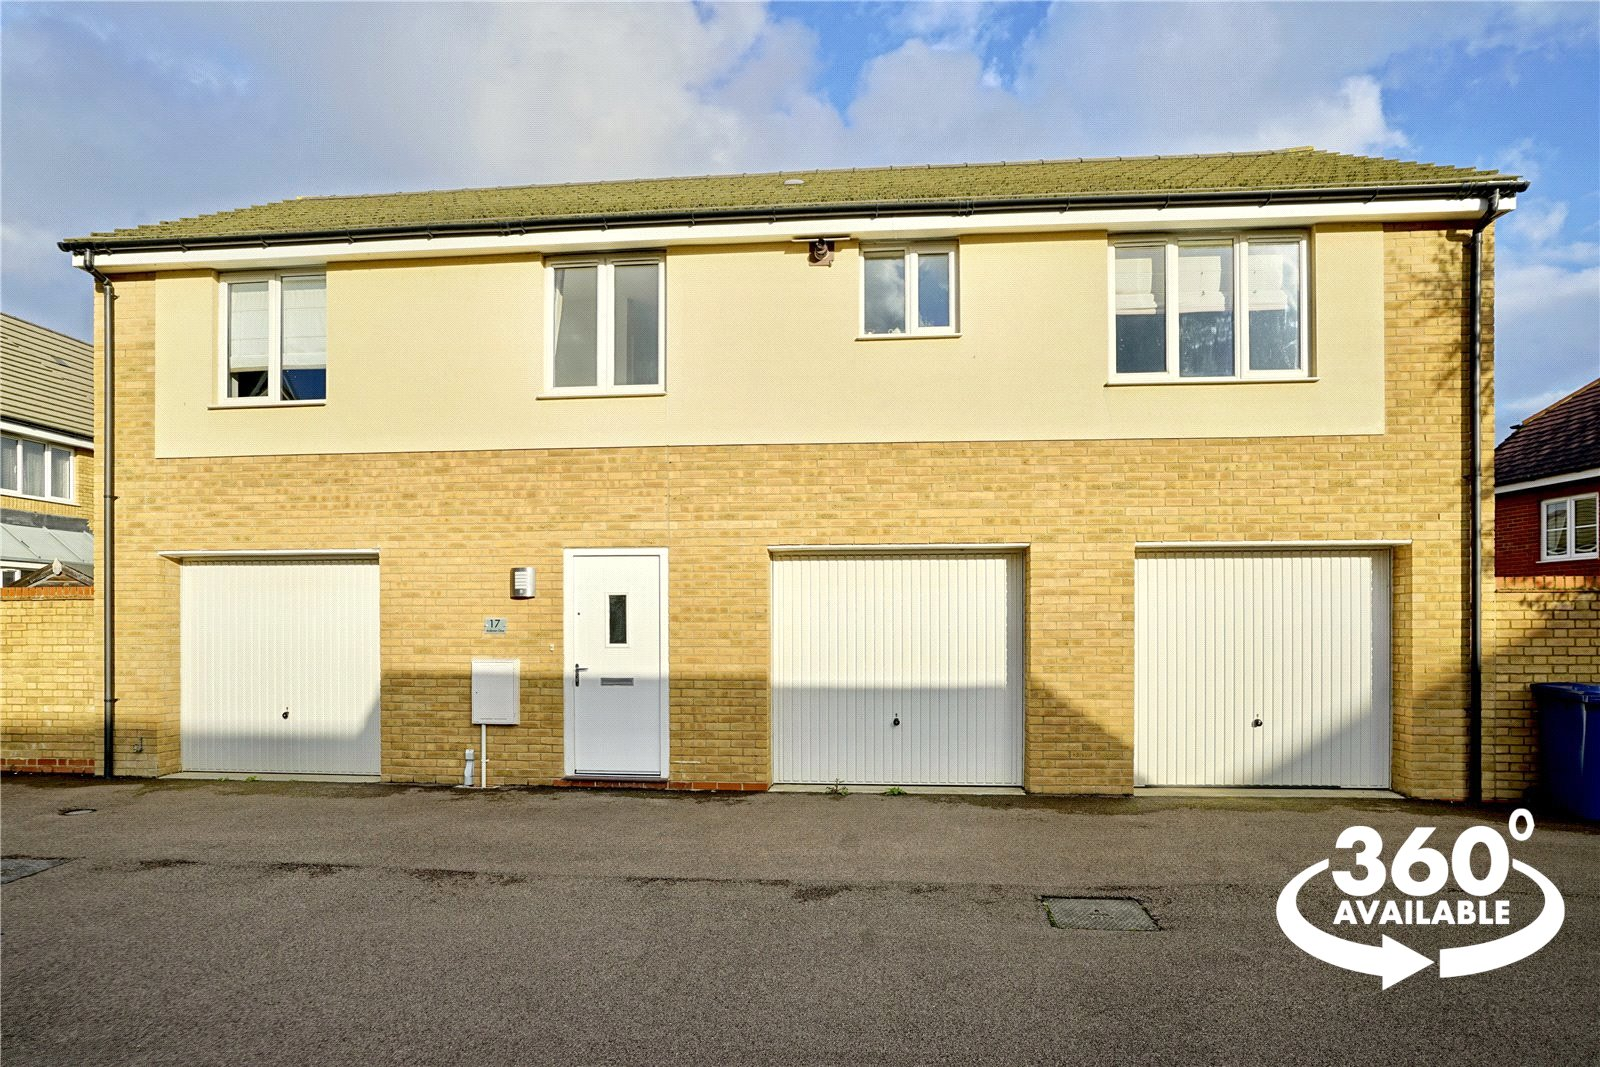 2 bed apartment for sale in St. Neots, PE19 6DN, PE19